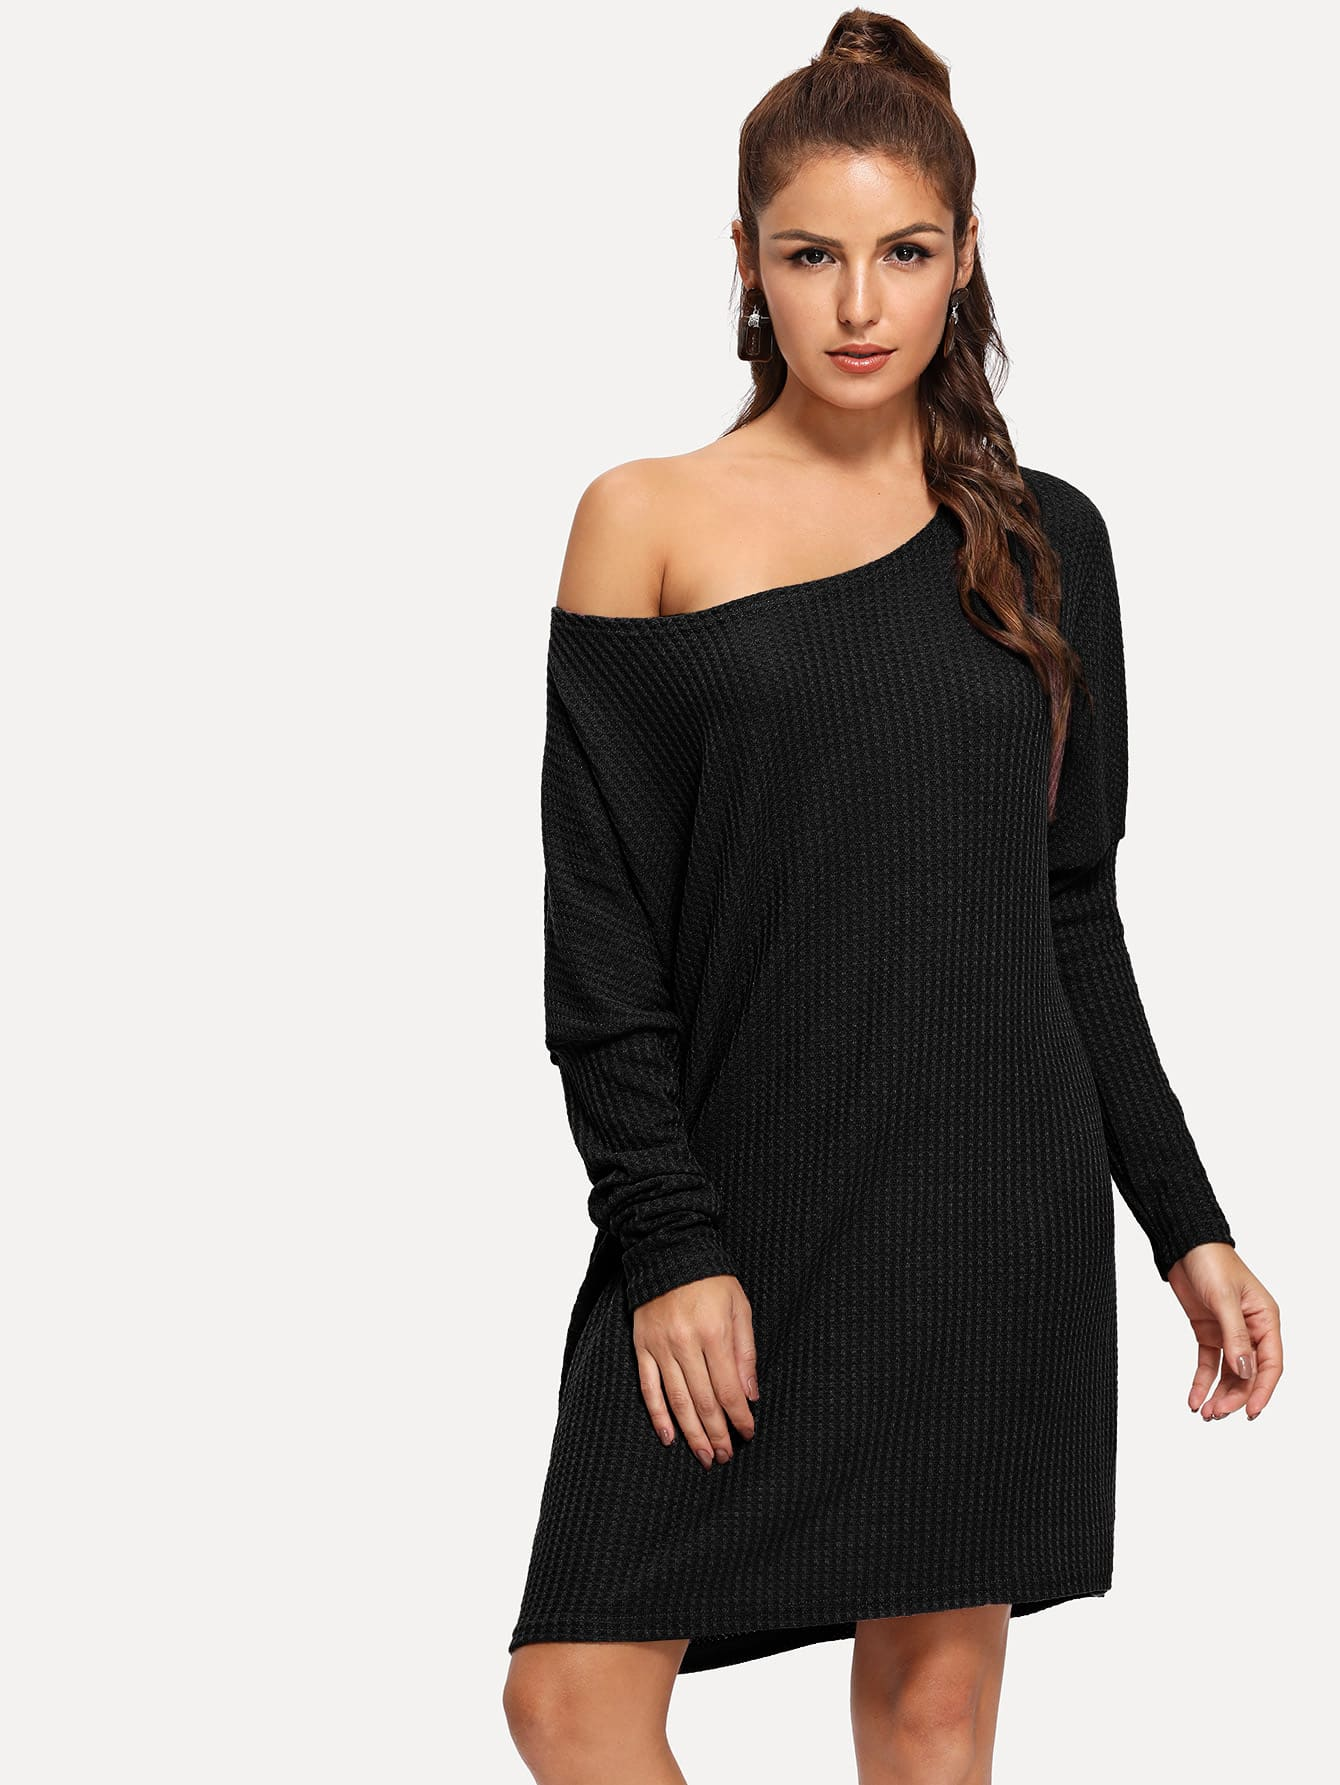 Leg-of-mutton Sleeve Sweater Dress Leg-of-mutton Sleeve Sweater Dress